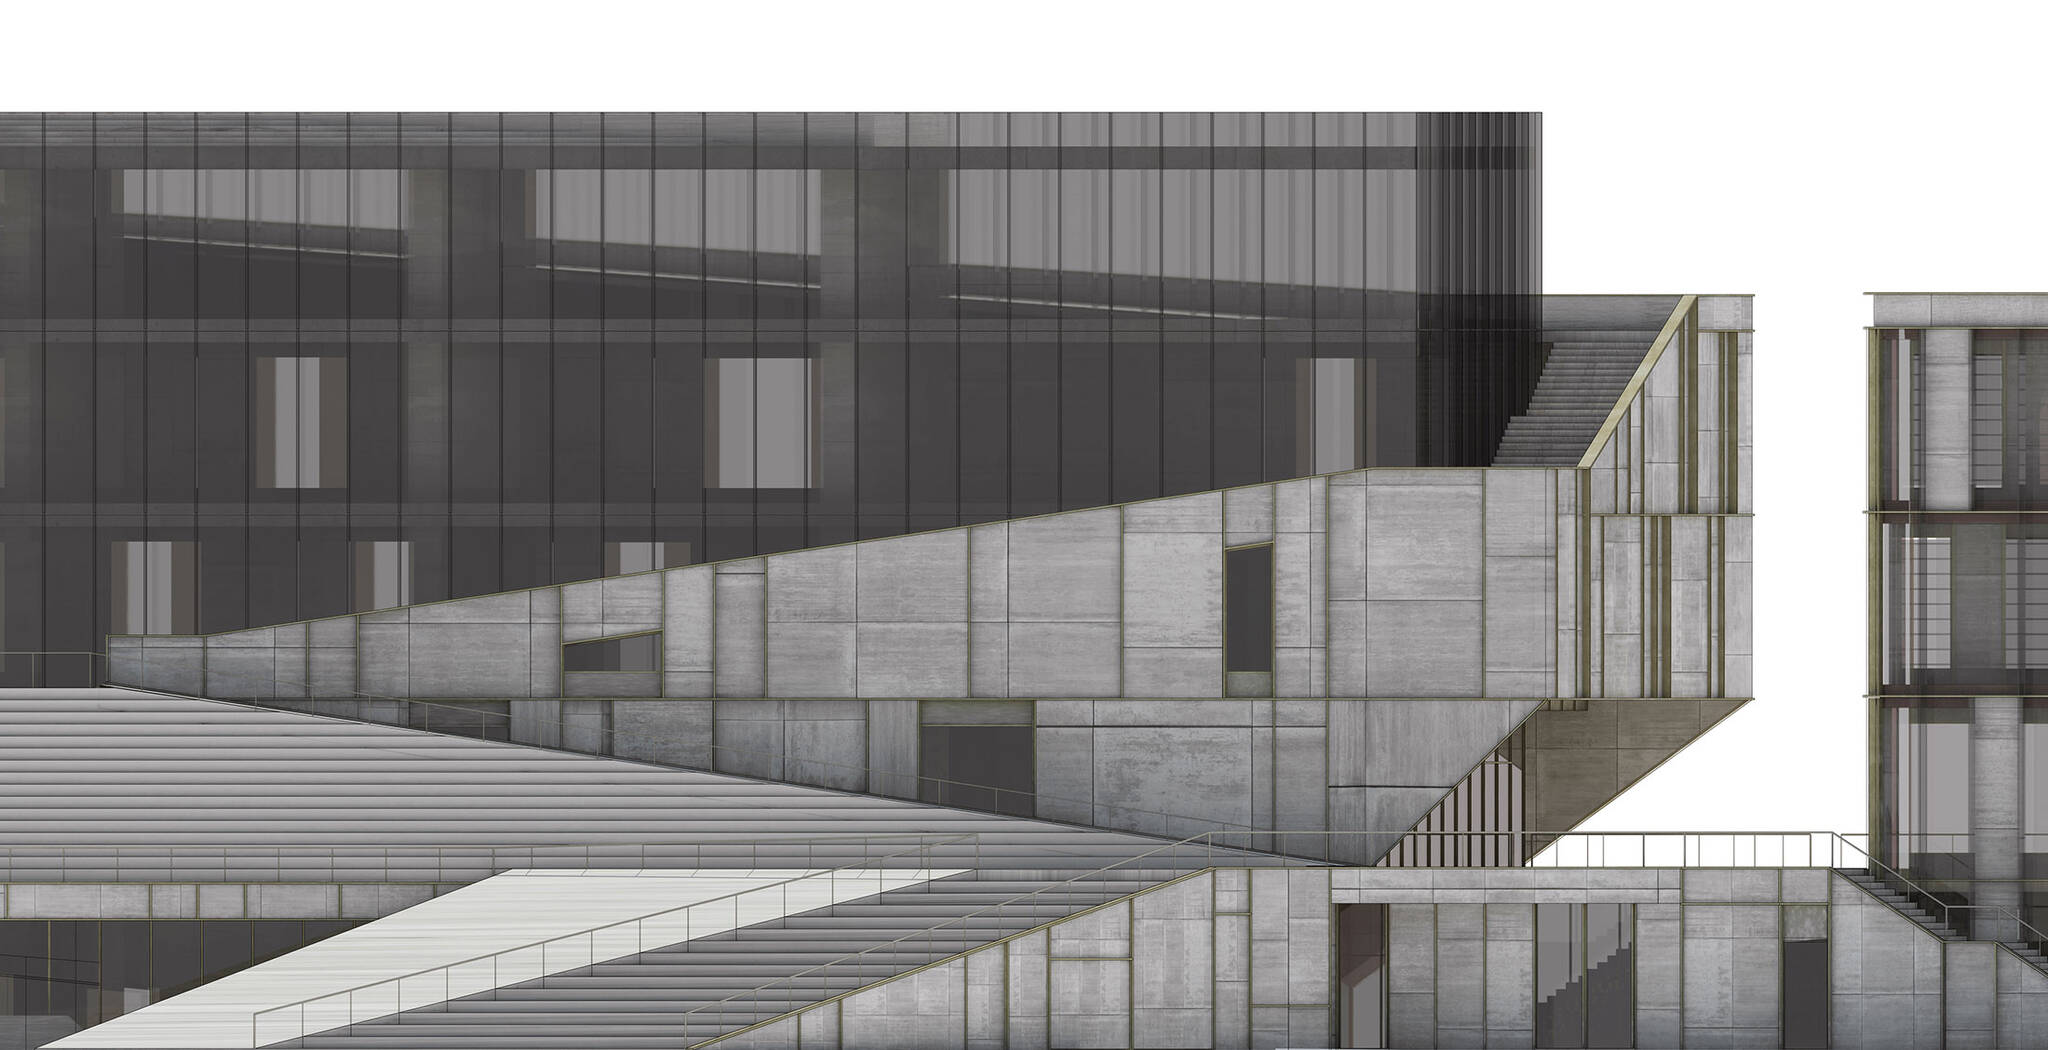 Elevation detail of the Museum of Etnography project located in Budapest, Hungary designed by the architecture studio Danny Forster & Architecture